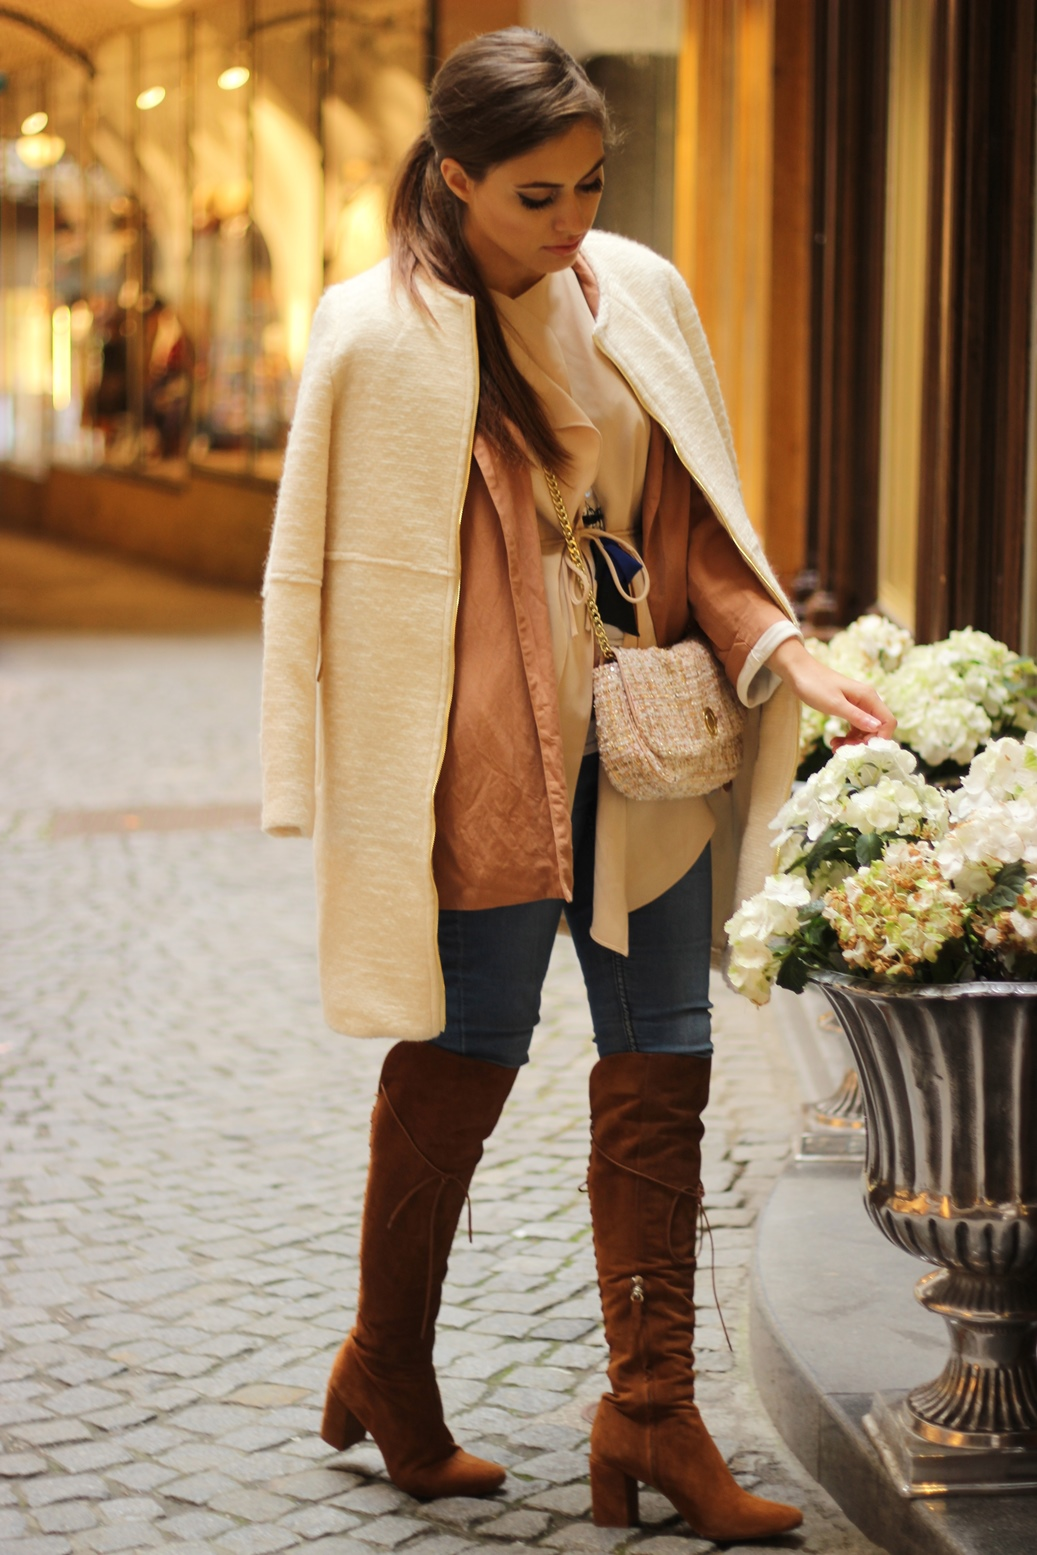 zara-streetstyle-outfit-look-austria-fashion-blog